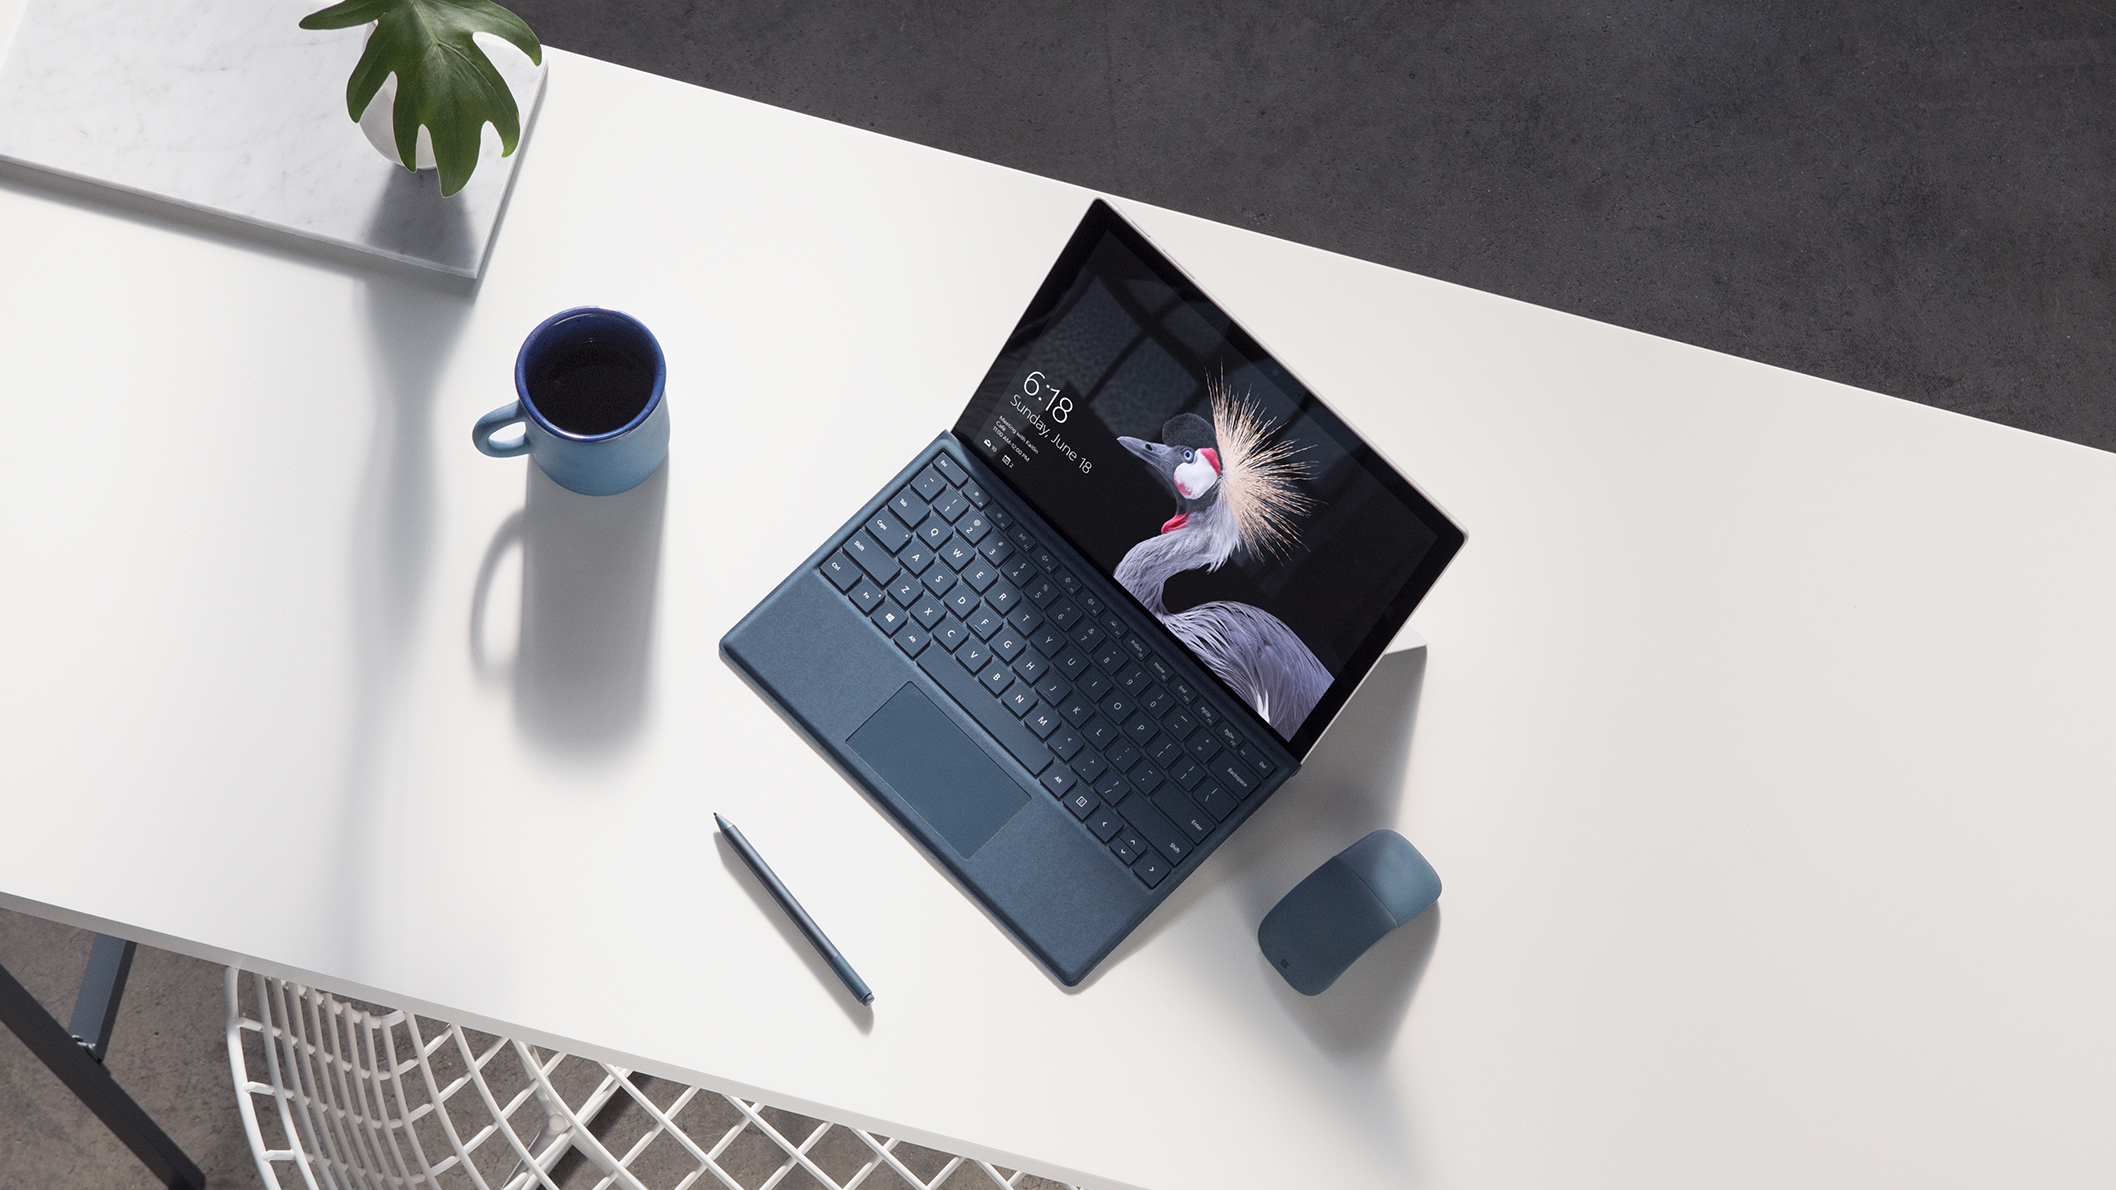 Surface Pro With Type Cover Attached, With Surface Mouse And Surface Pen  Nearby